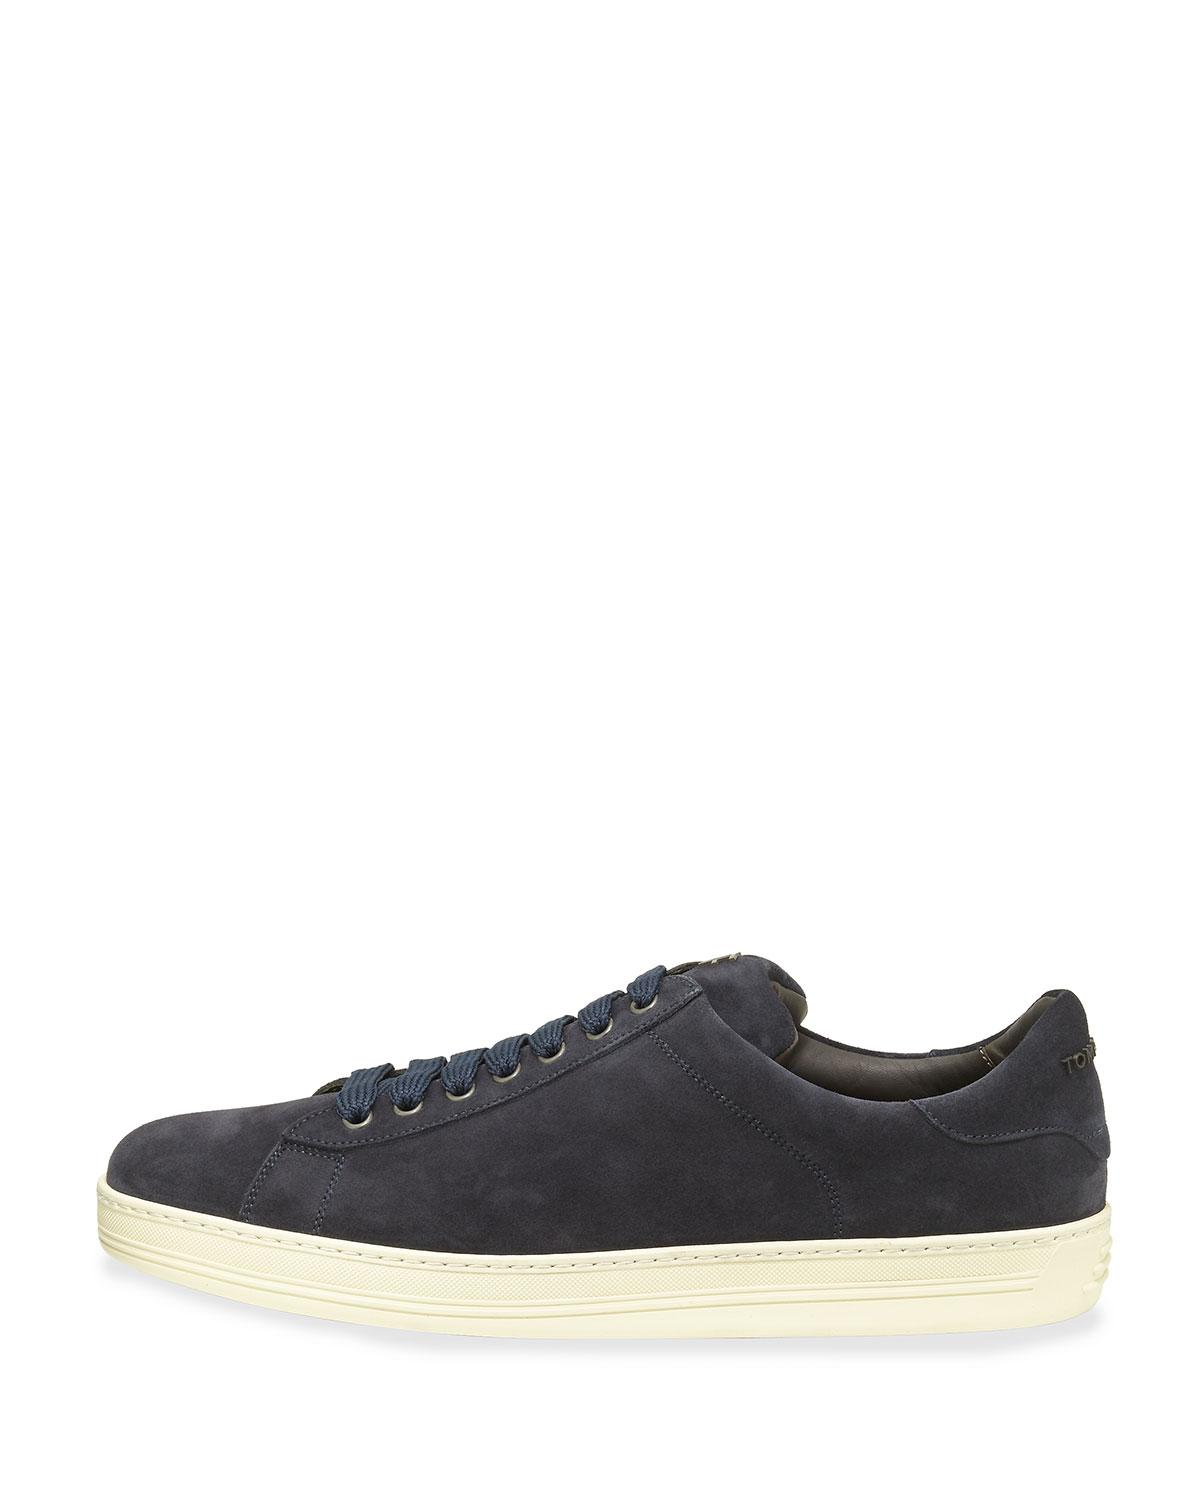 Sneaker smooth leather Hole pattern Logo brown Tom Ford FfWyA